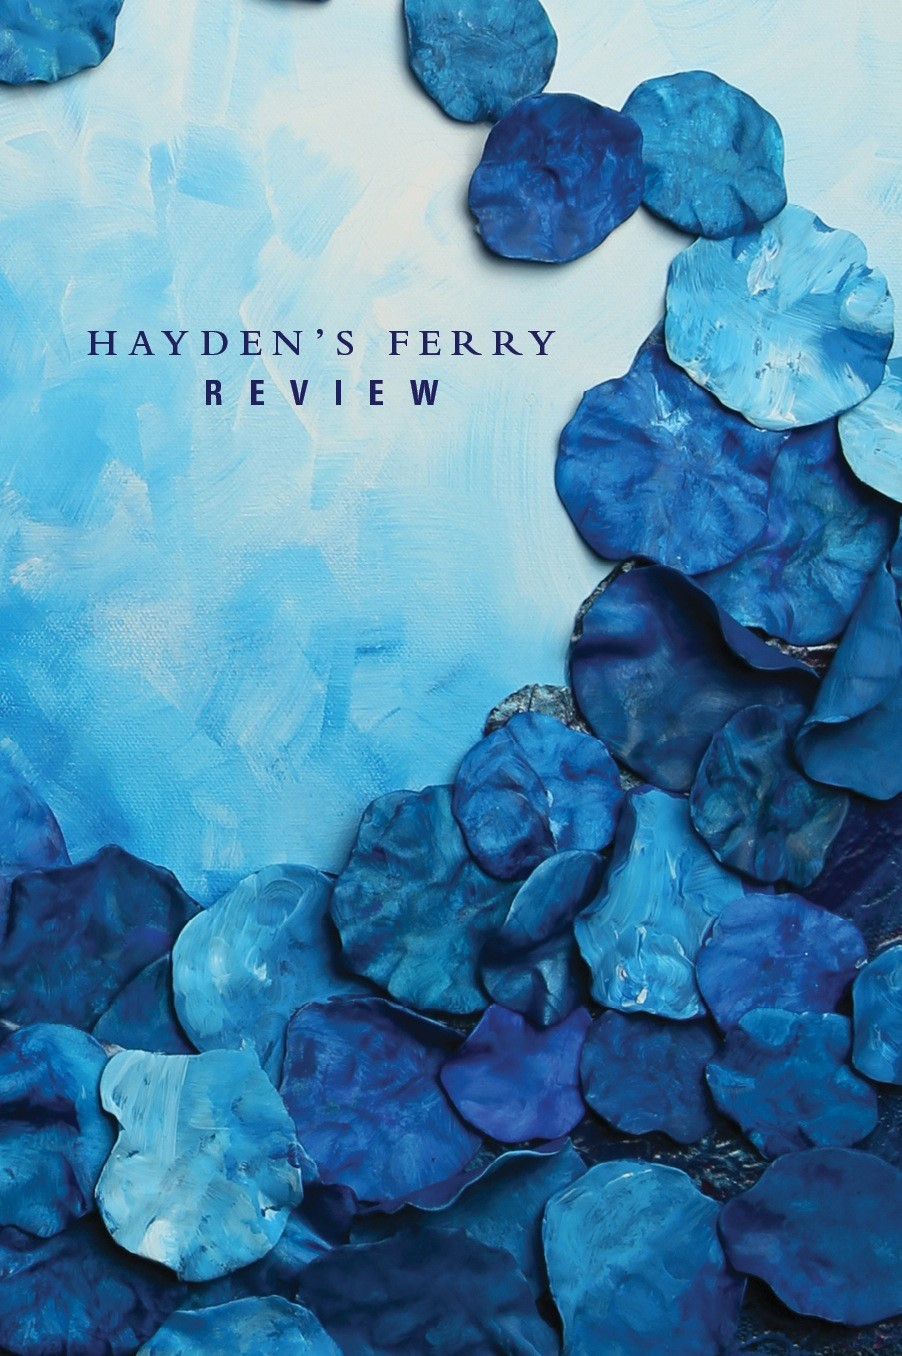 Hayden's Ferry Review #59